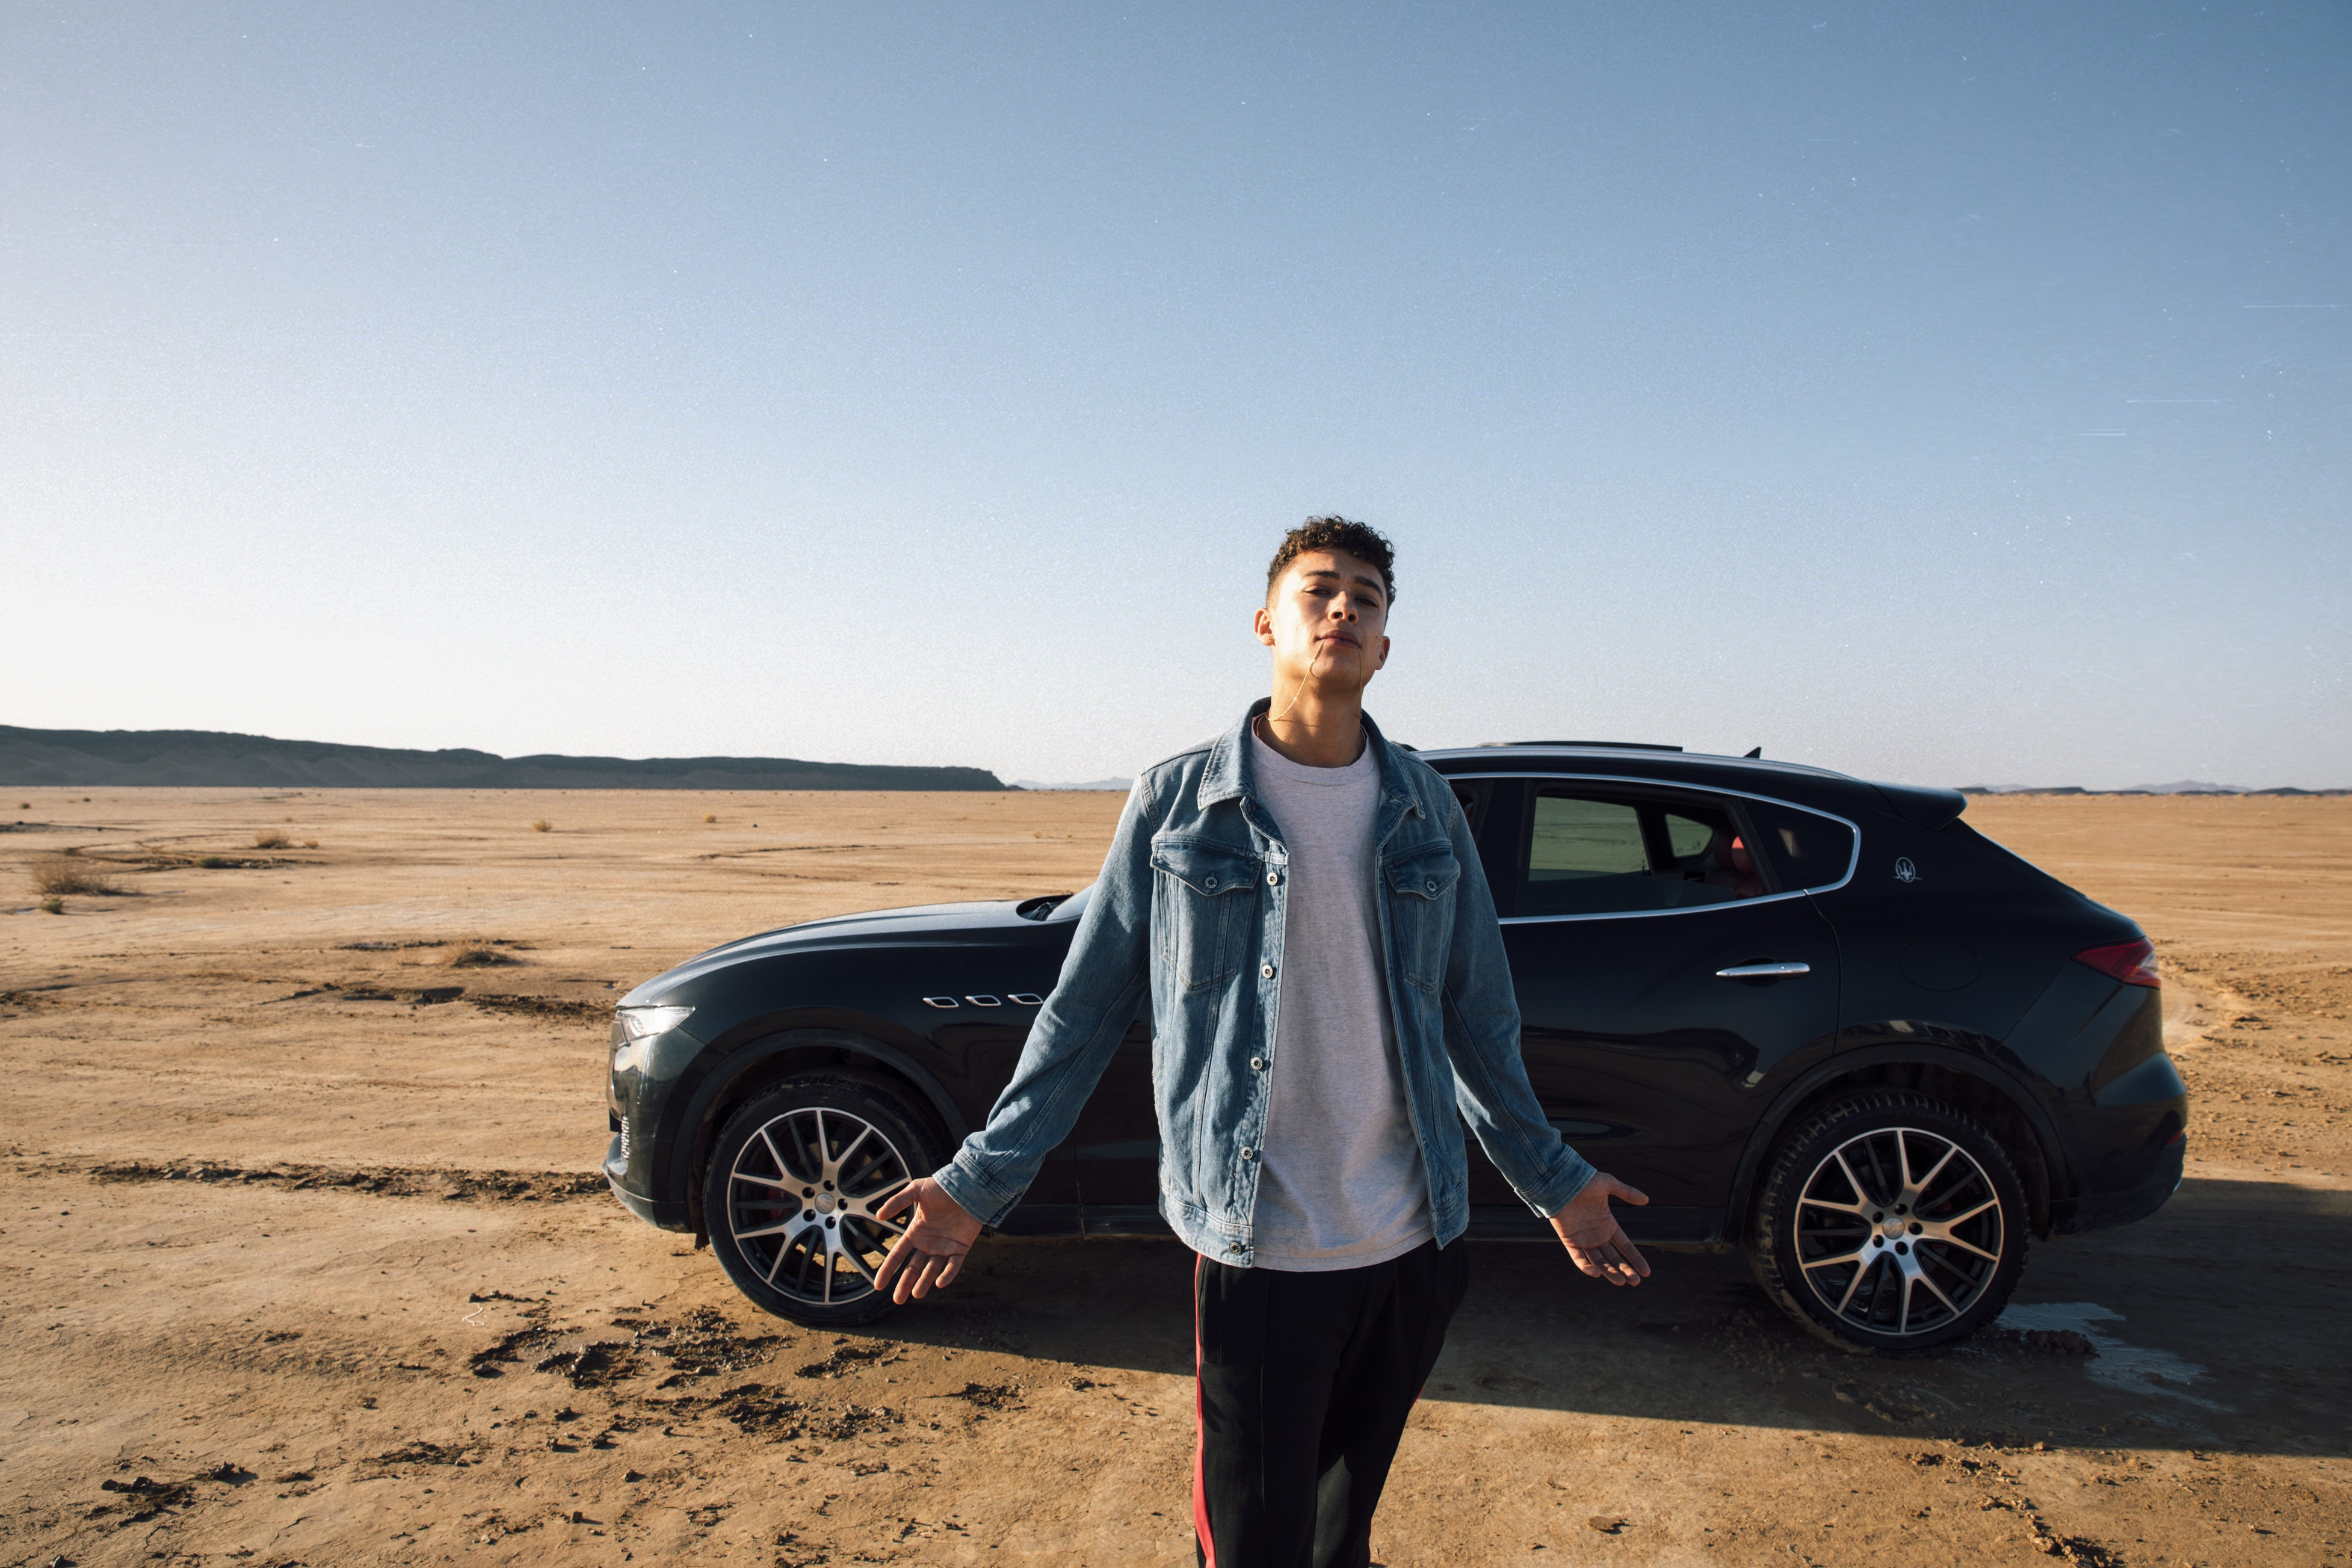 A young adult standing in front of a car in a desert